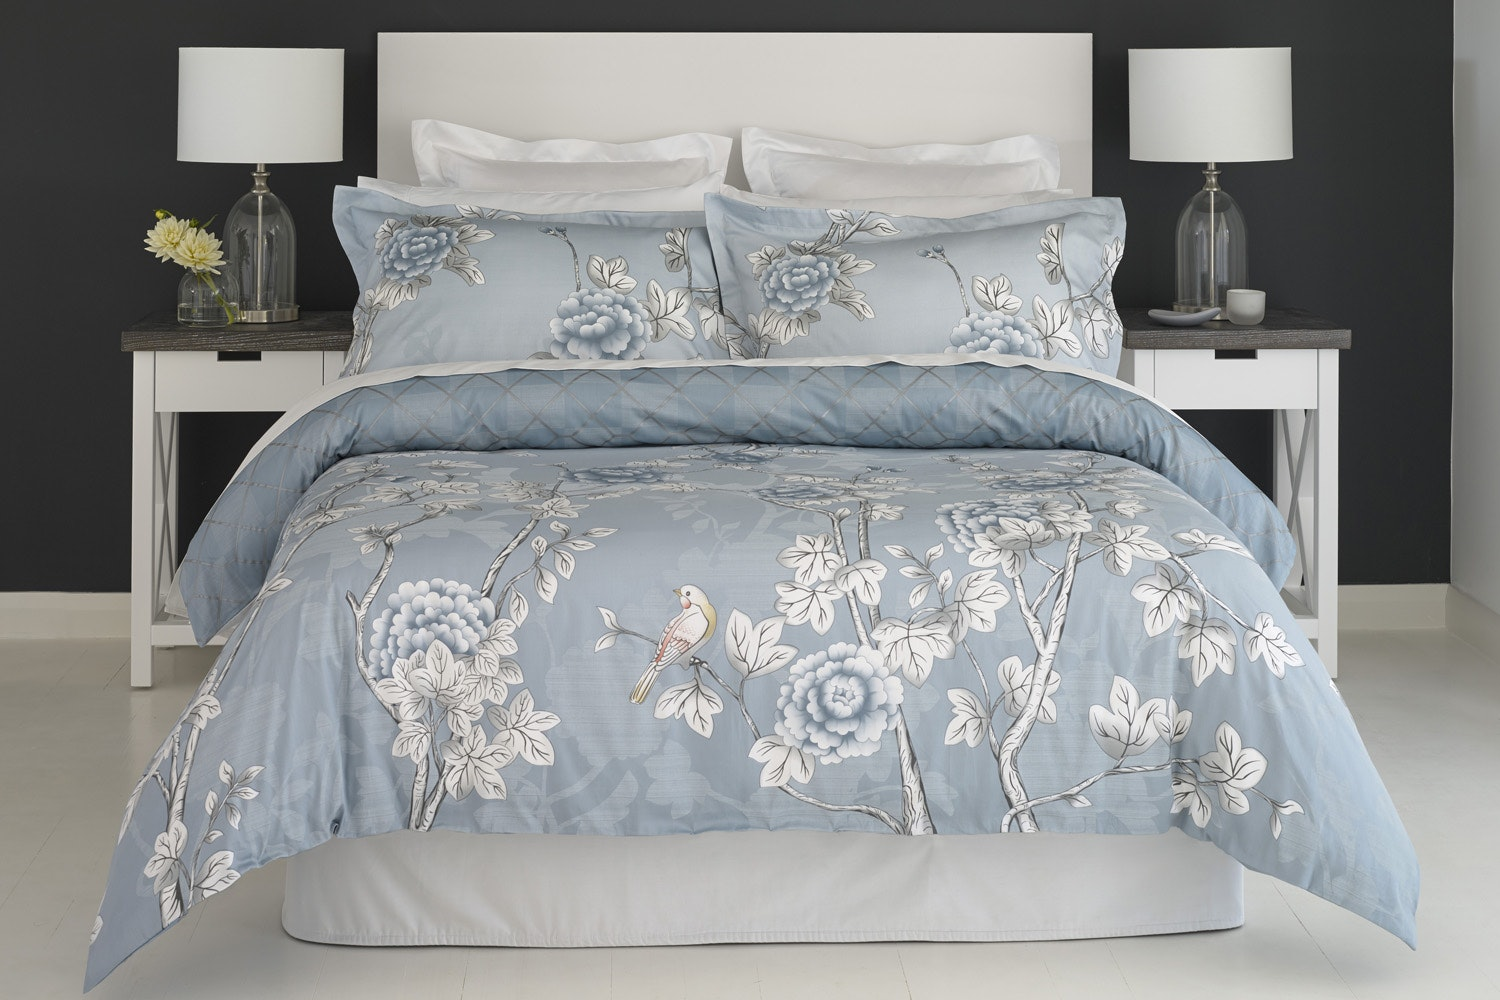 Ice Flower Duvet Cover